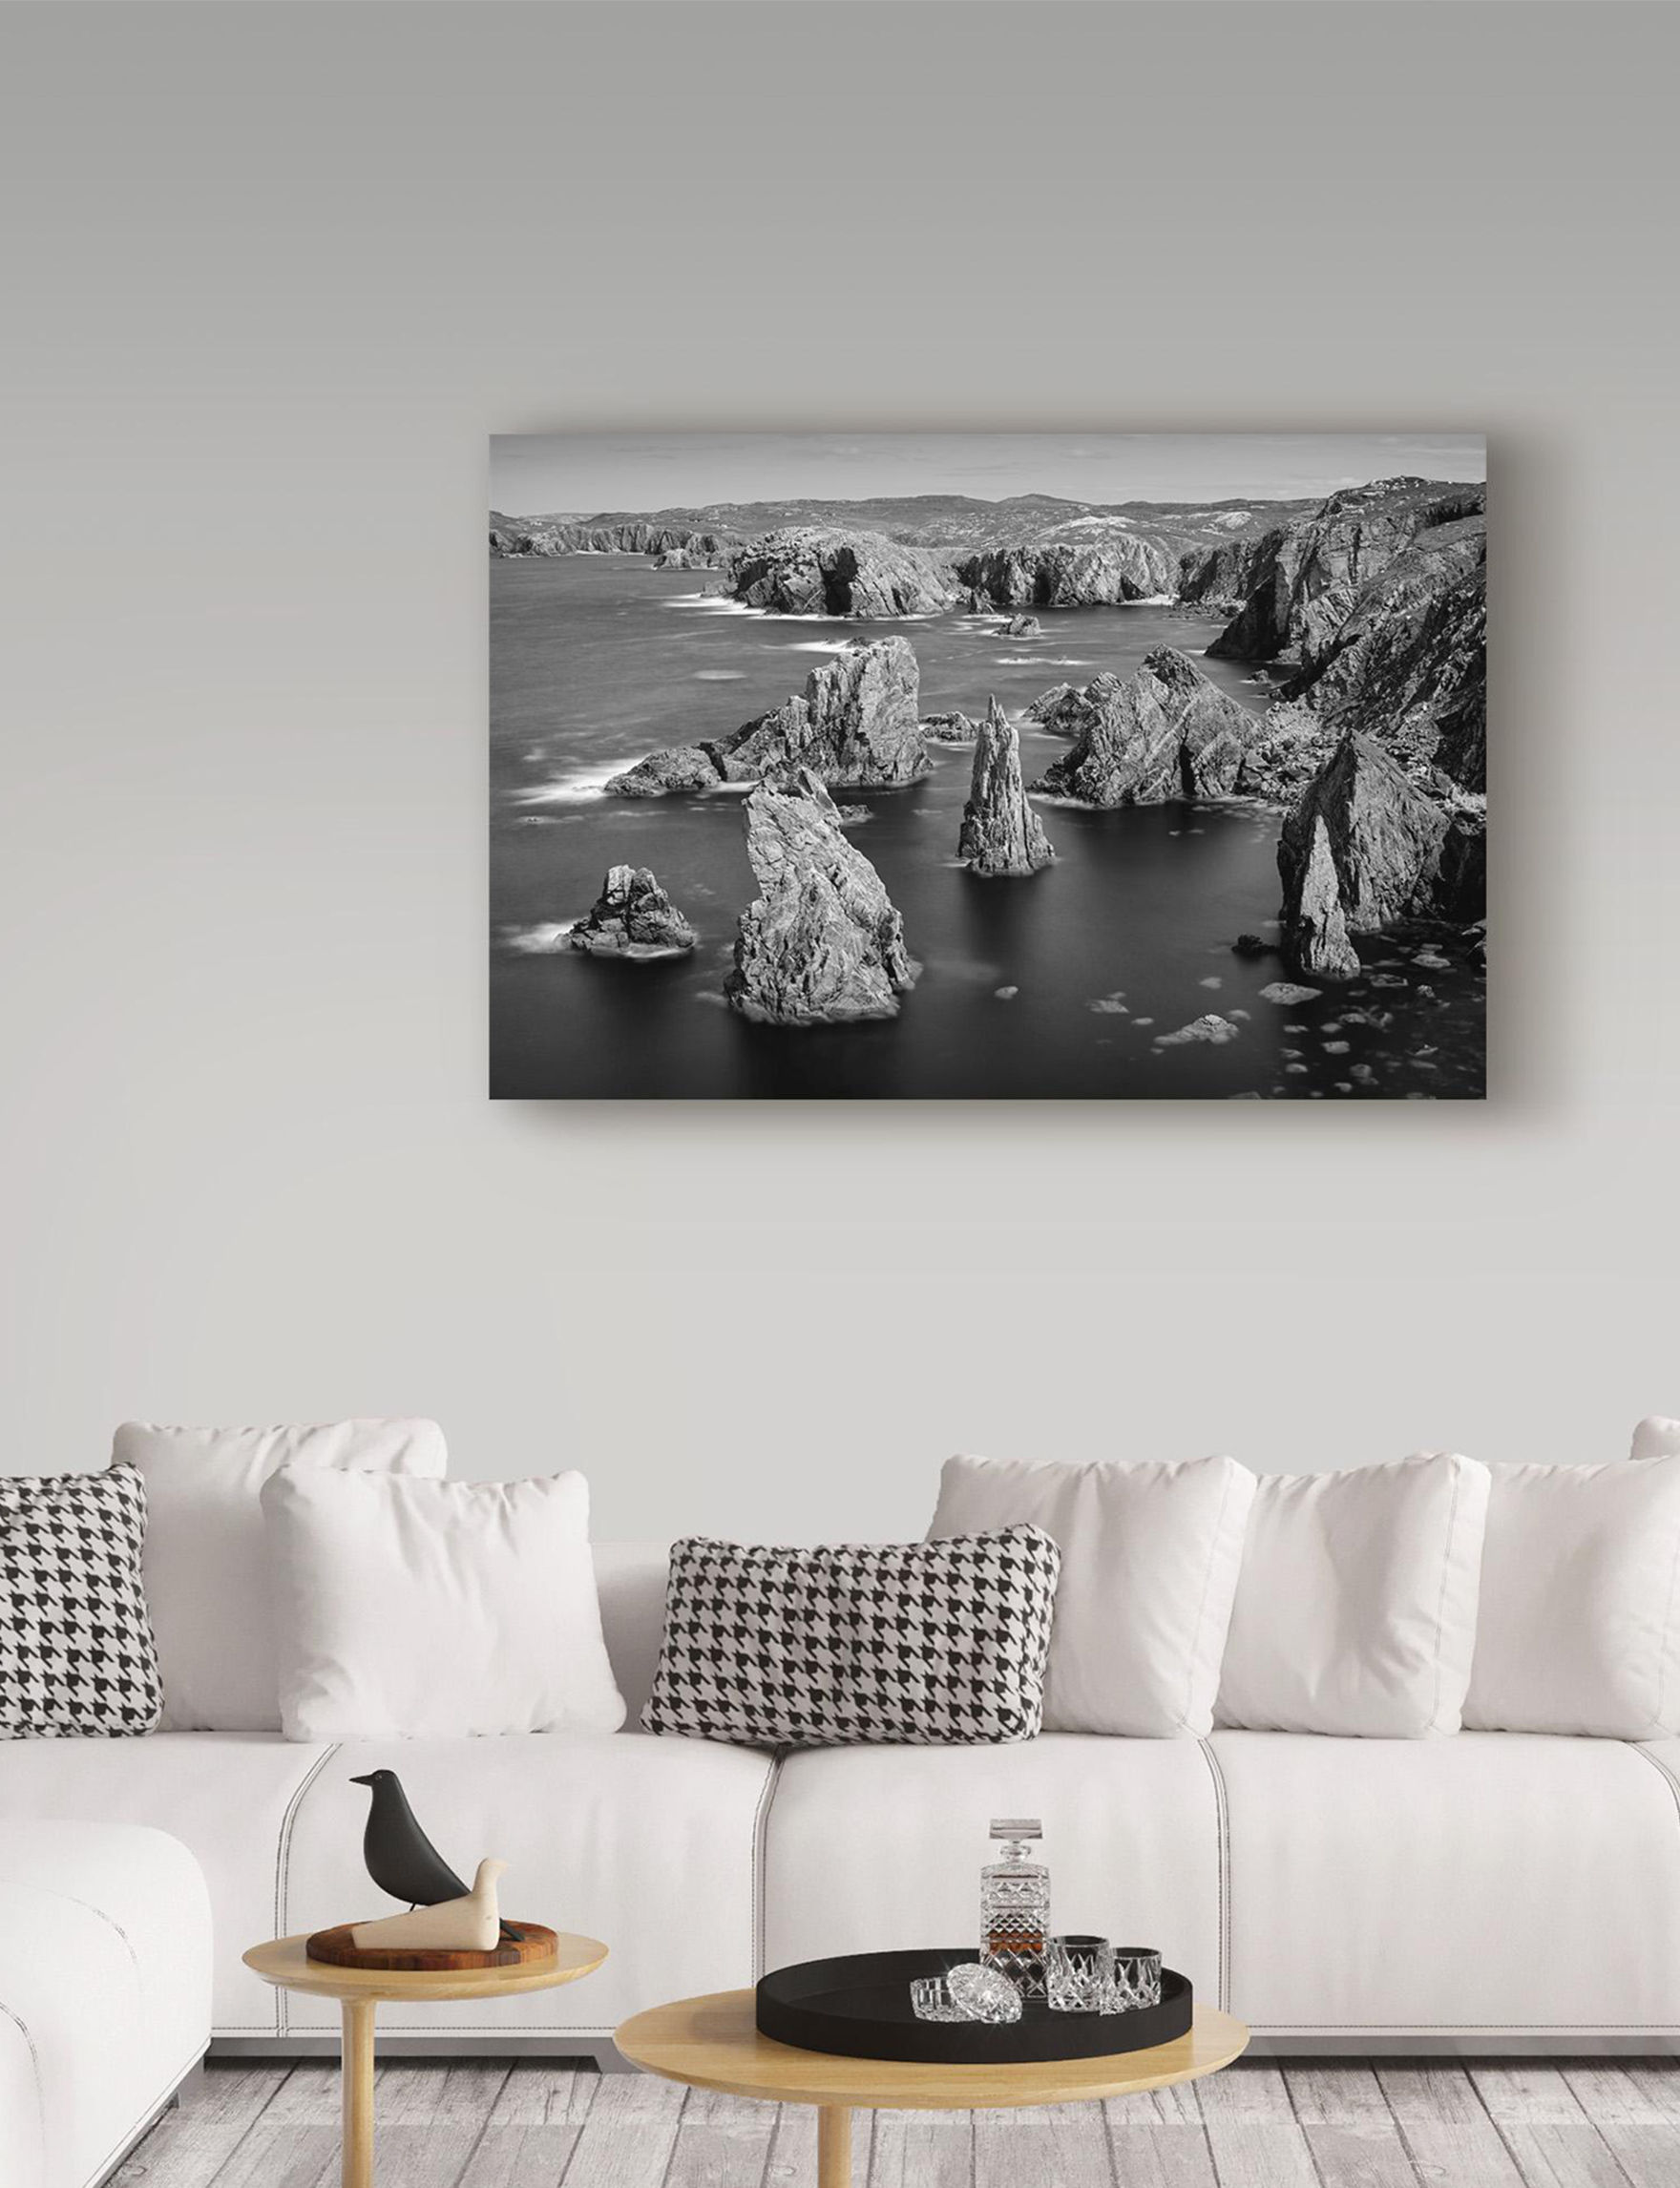 Trademark Fine Art Black / White Wall Art Home Accents Wall Decor